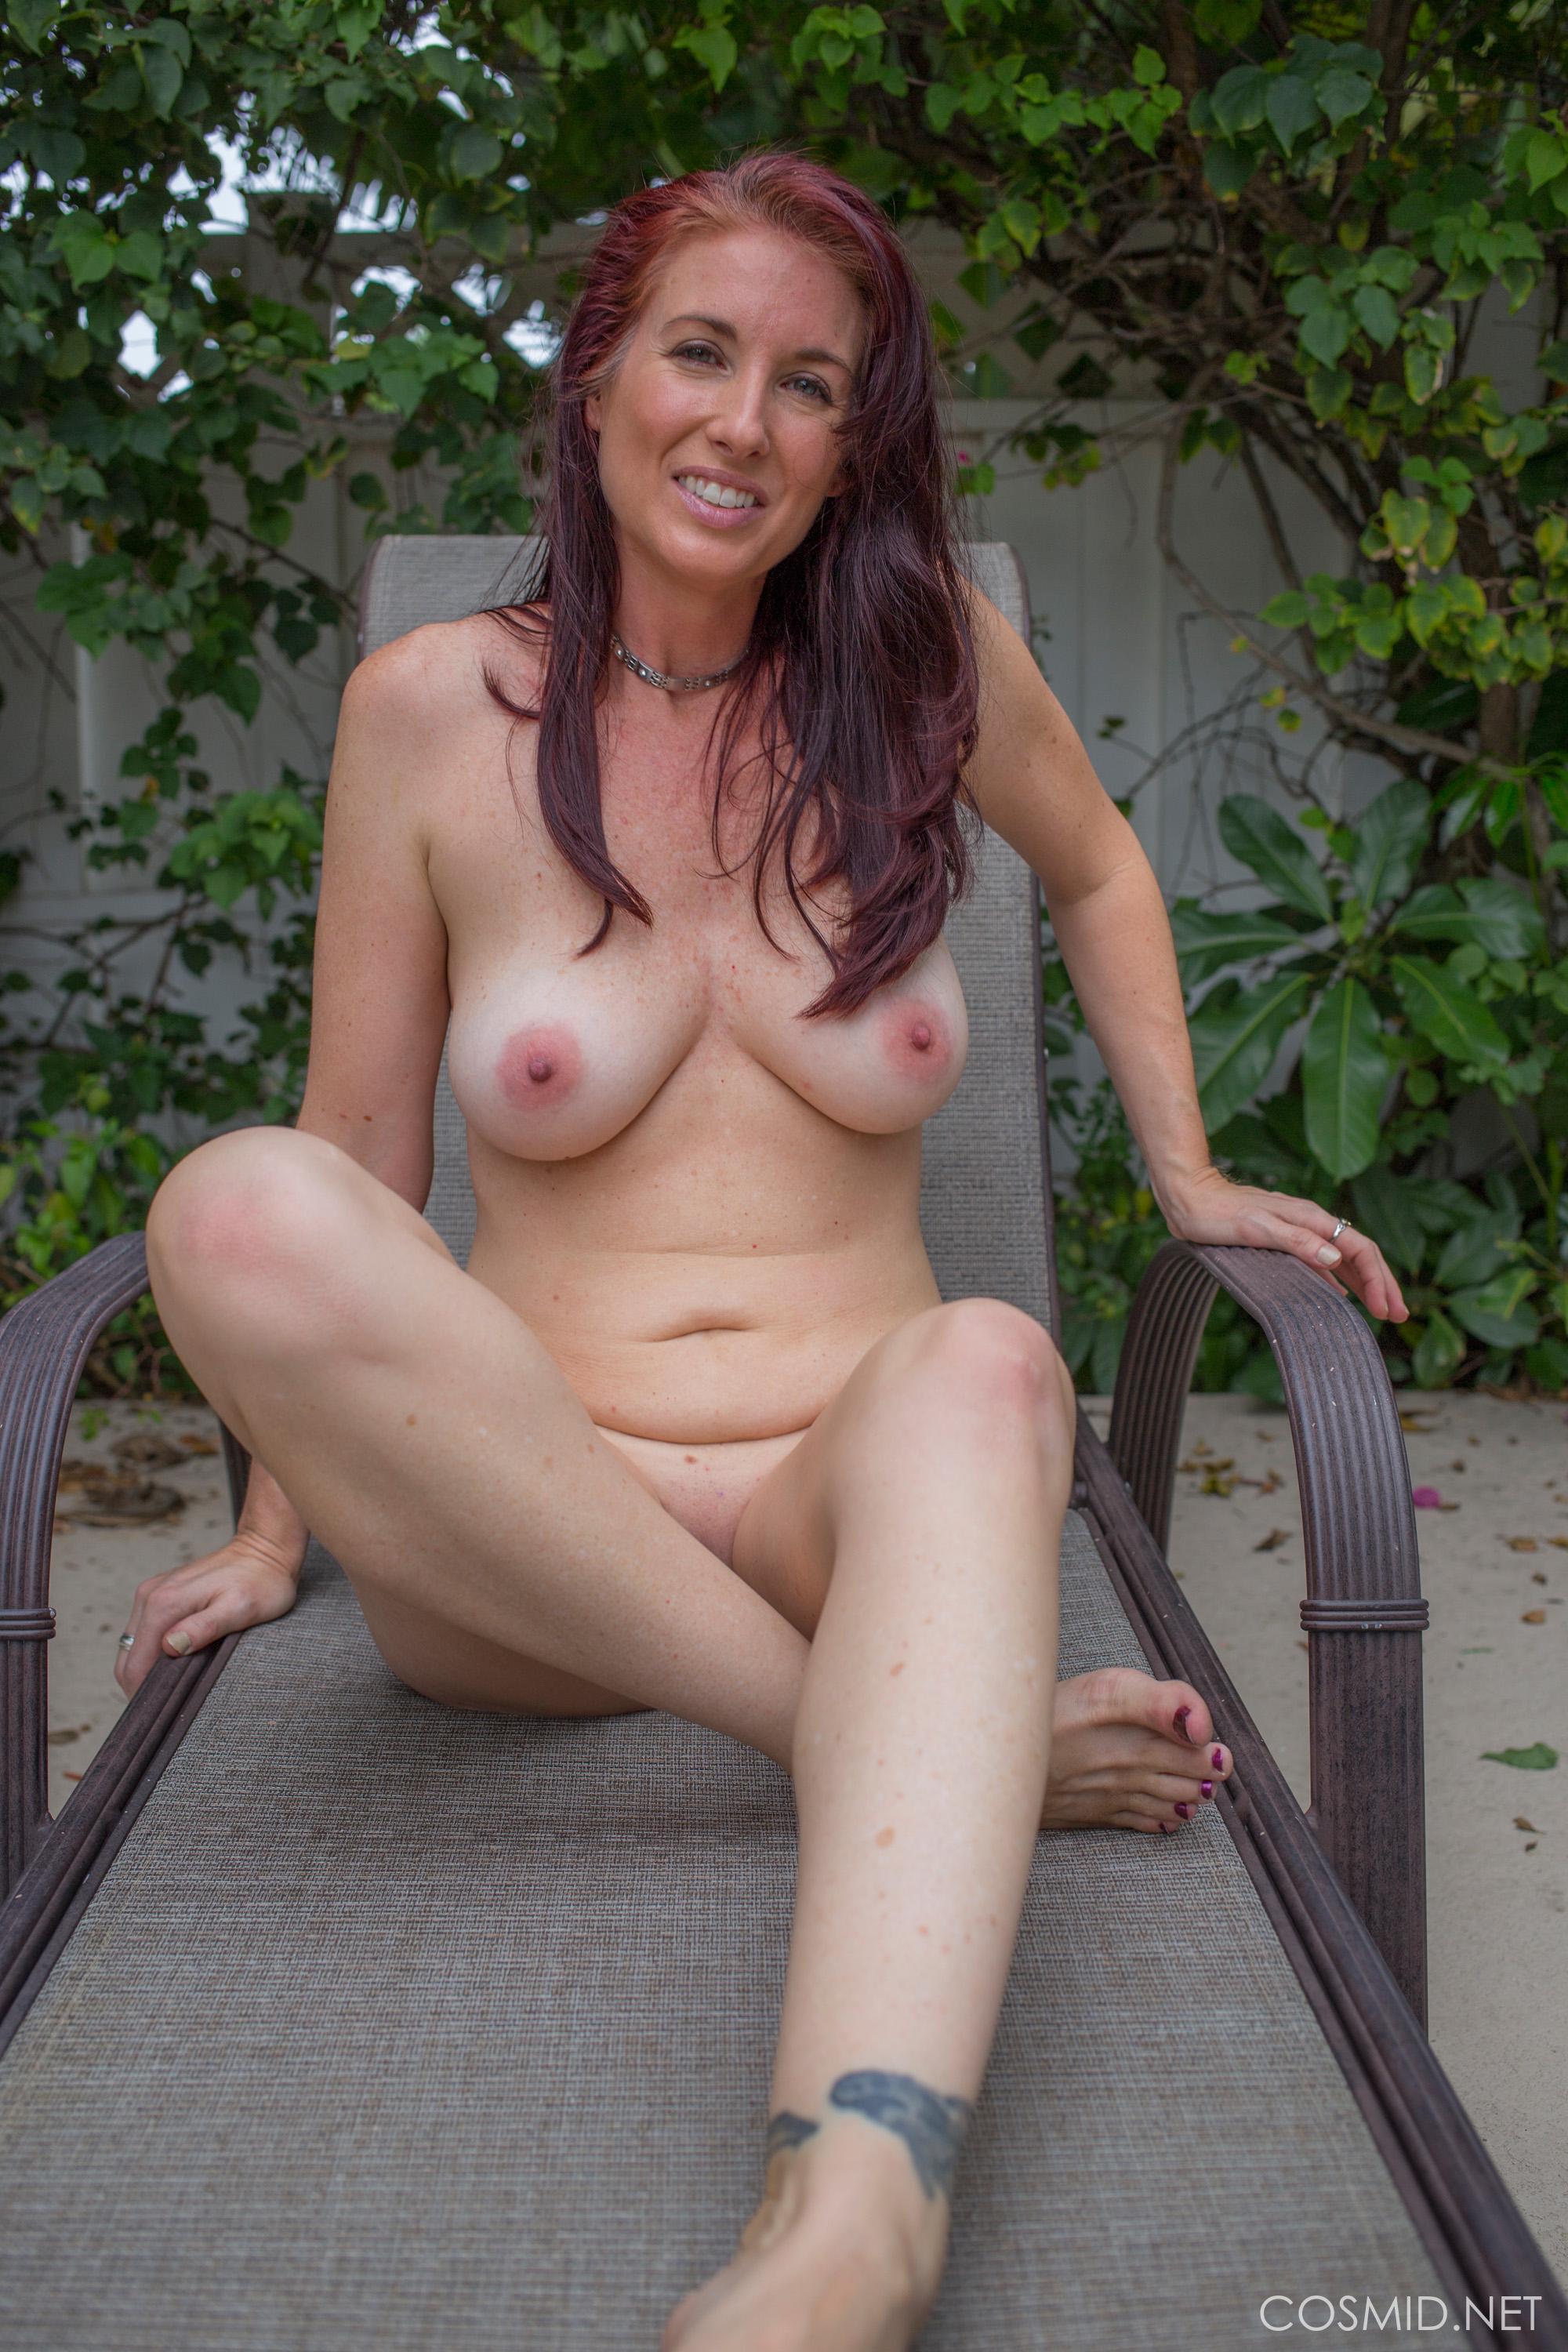 Hot girl Andy Adams strips out of her yoga pants in the back yard ...